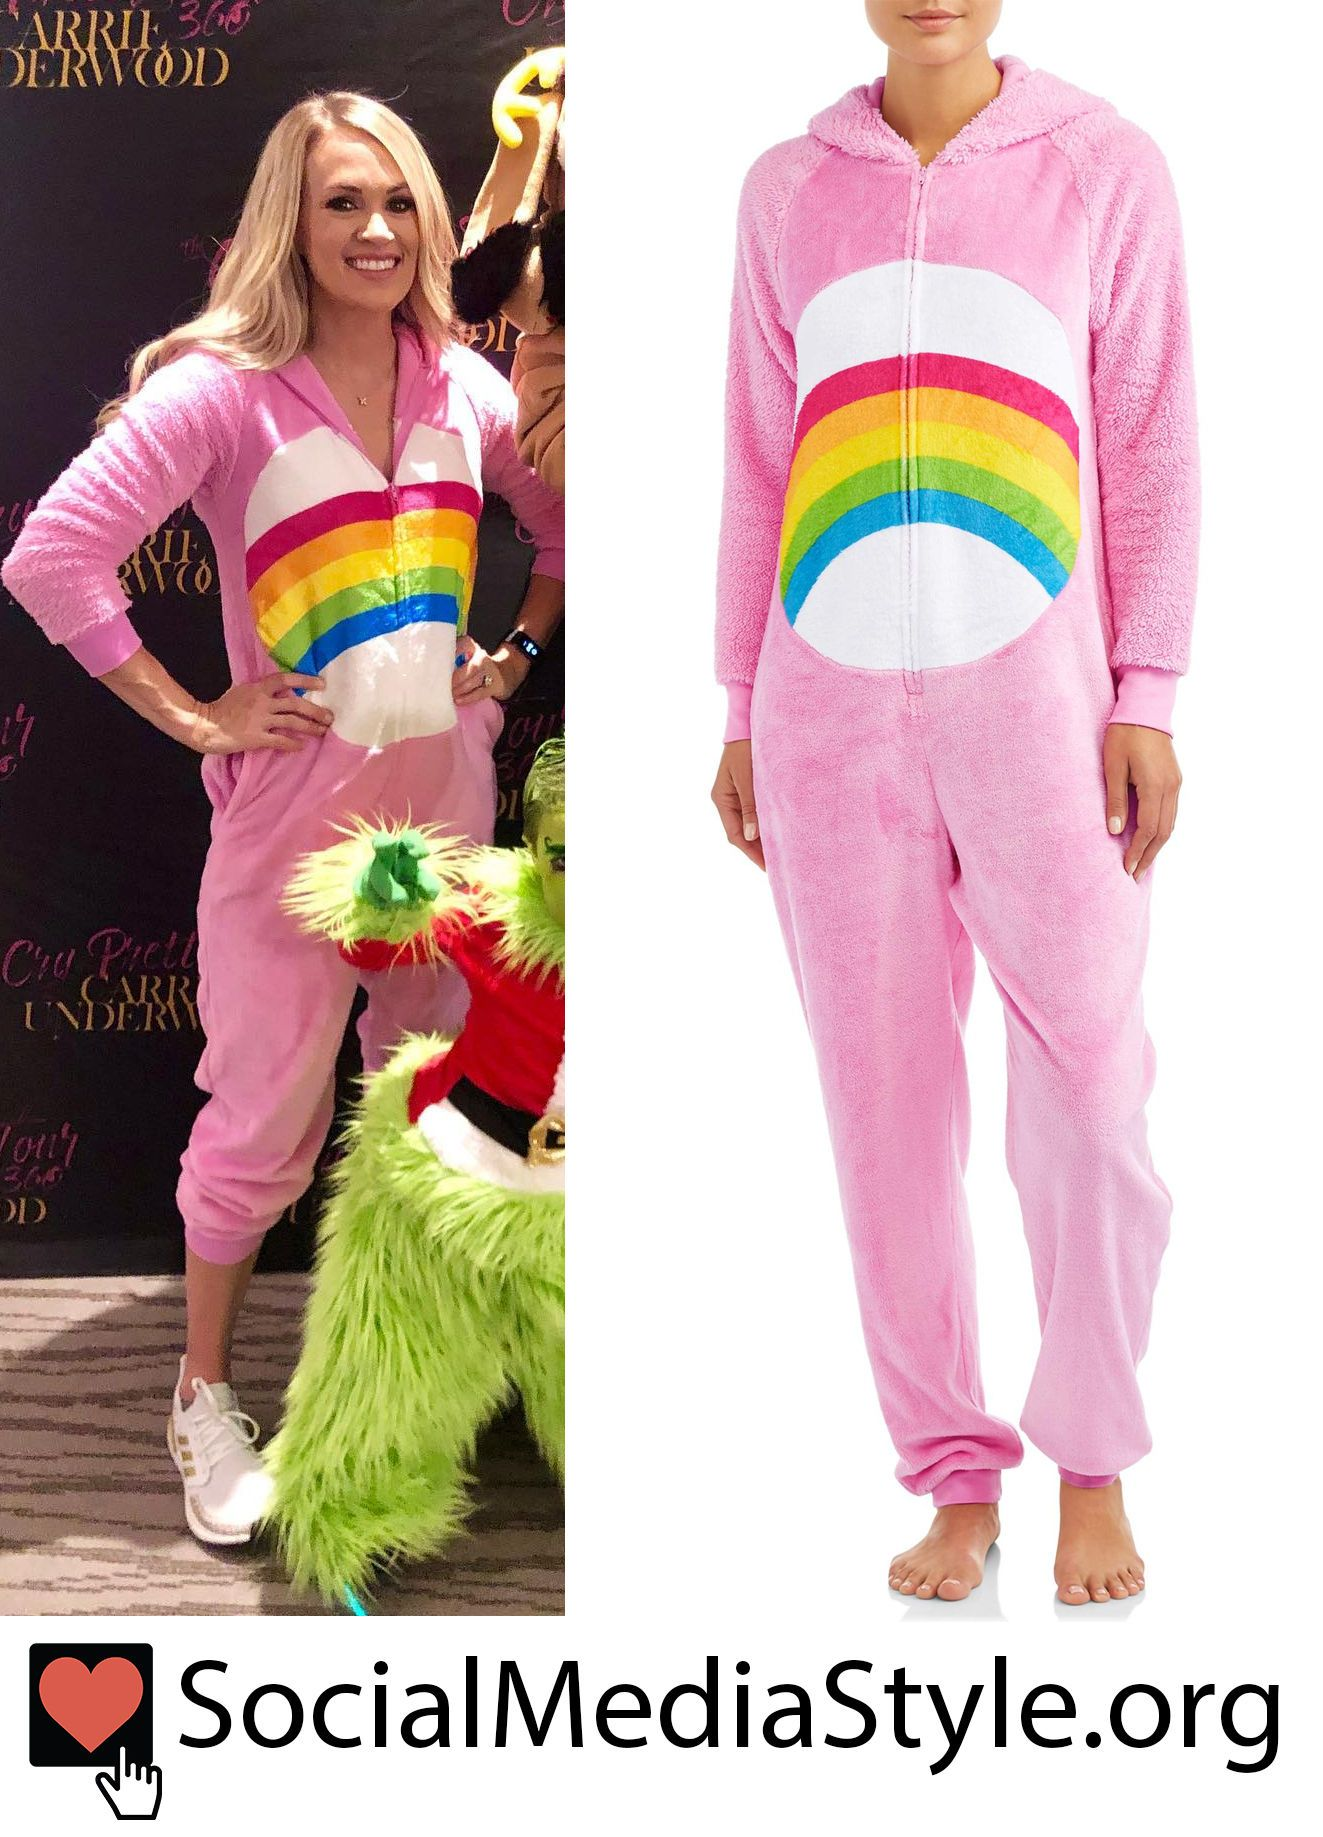 Buy Carrie Underwood's Care Bear onesie costume here! #CarrieUnderwood #CareBear #CareBearcostume #CareBearonesie #onesie #Halloween #carebearcostume